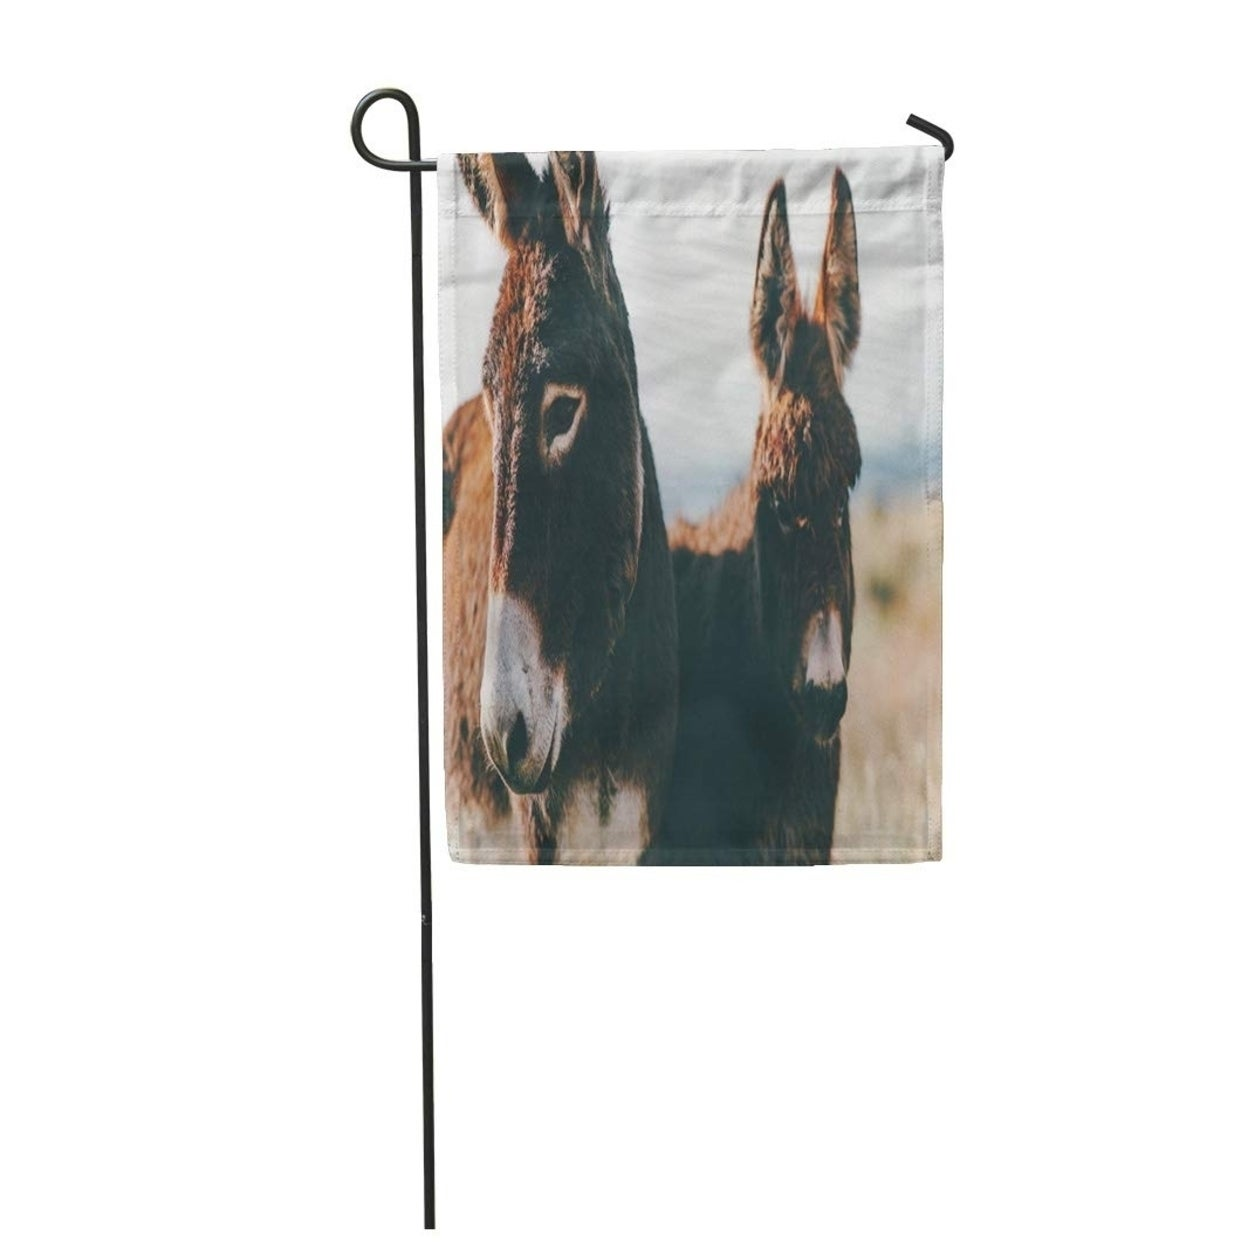 Shop Donkeys Farm Brown Colour Cute Funny Pets The Garden Flag Decorative Flag House Banner 12x18 Inch Overstock 31335883